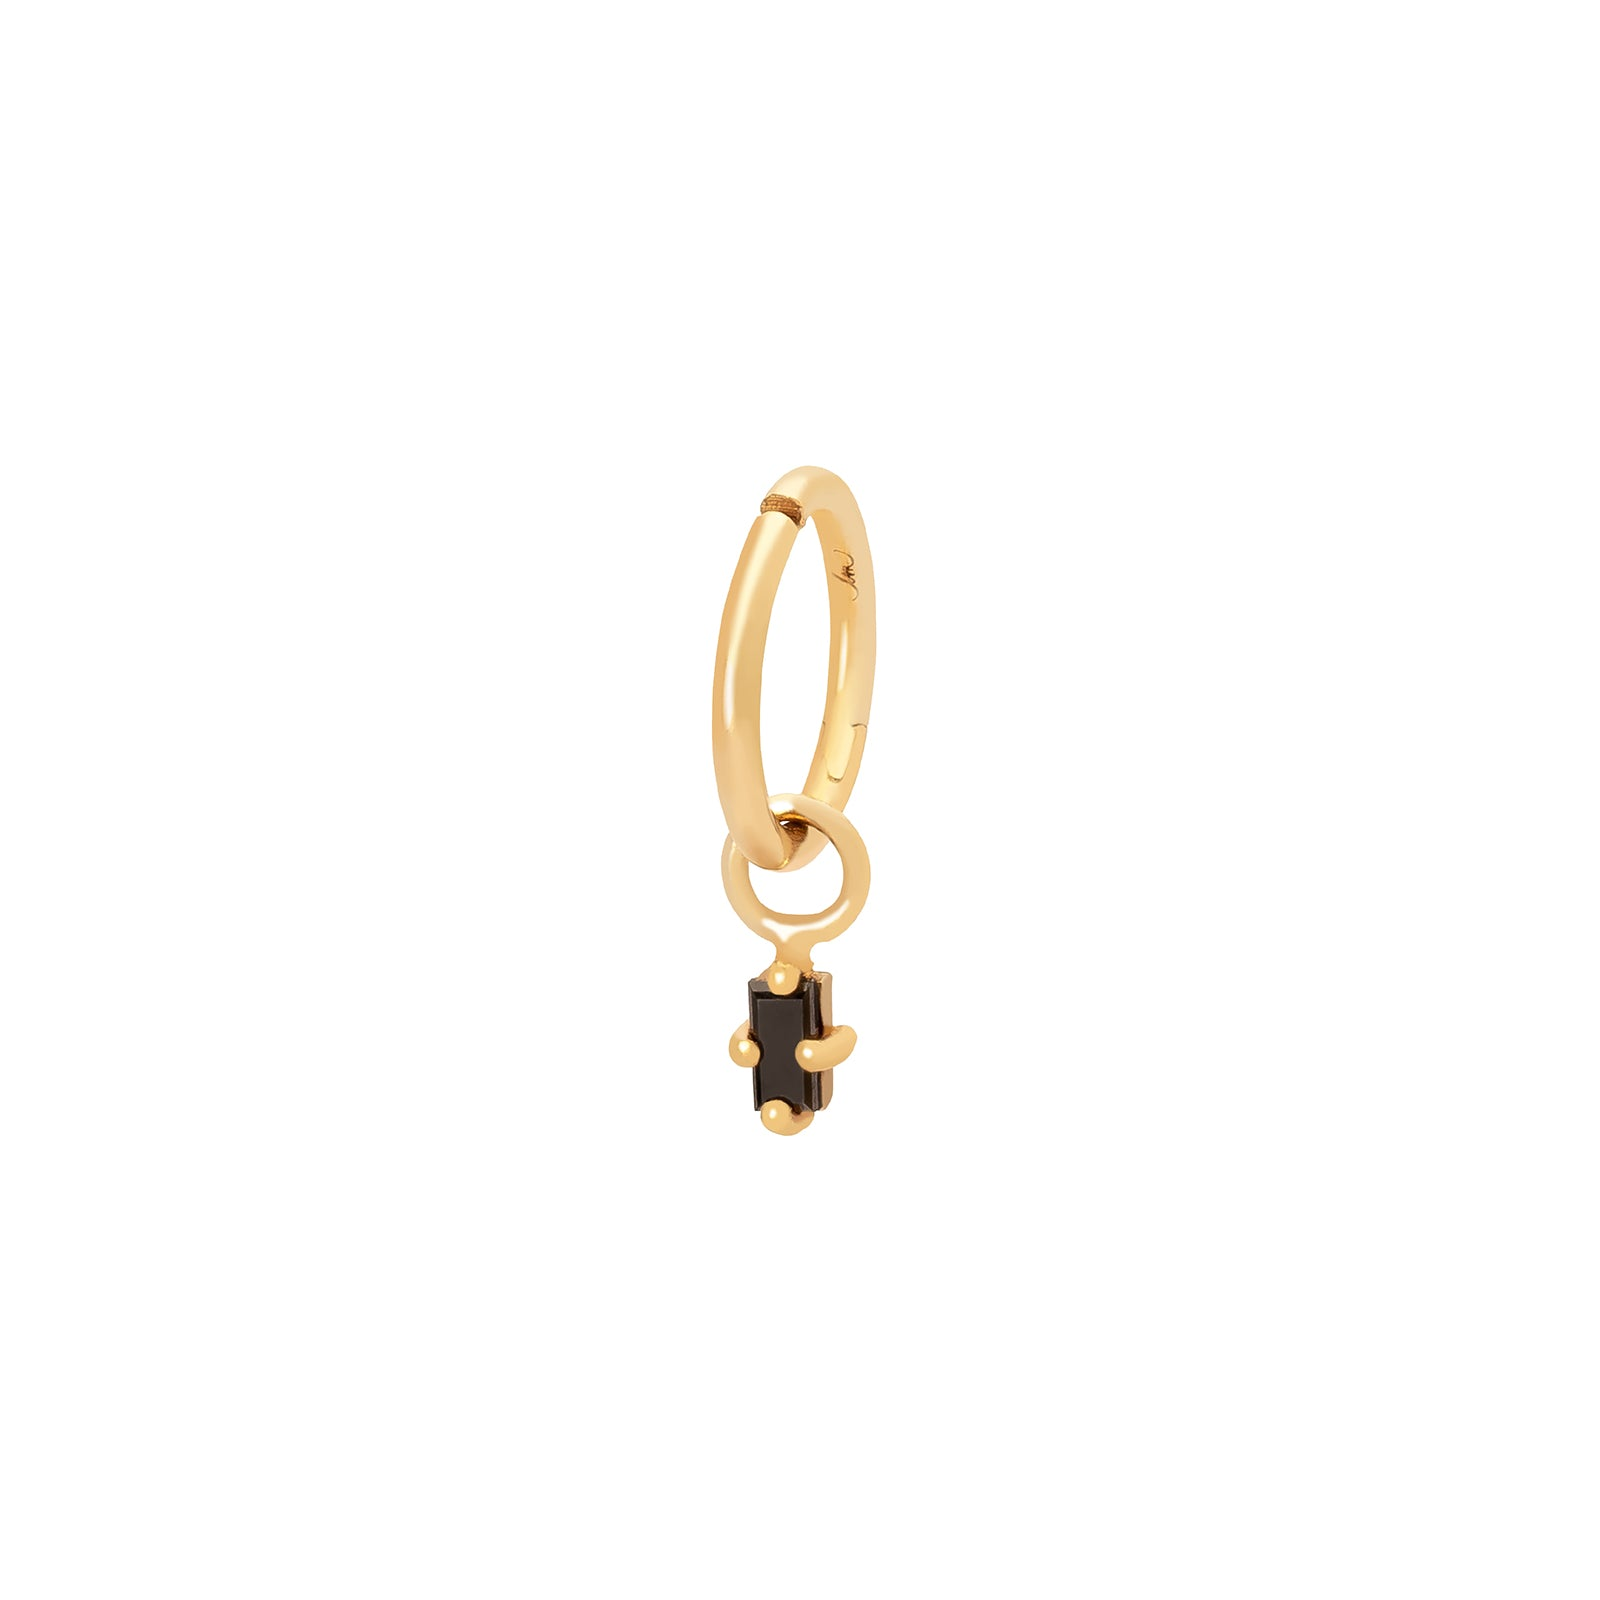 Lizzie Mandler Petit Huggie with Black Diamond Baguette Drop - Earrings - Broken English Jewelry